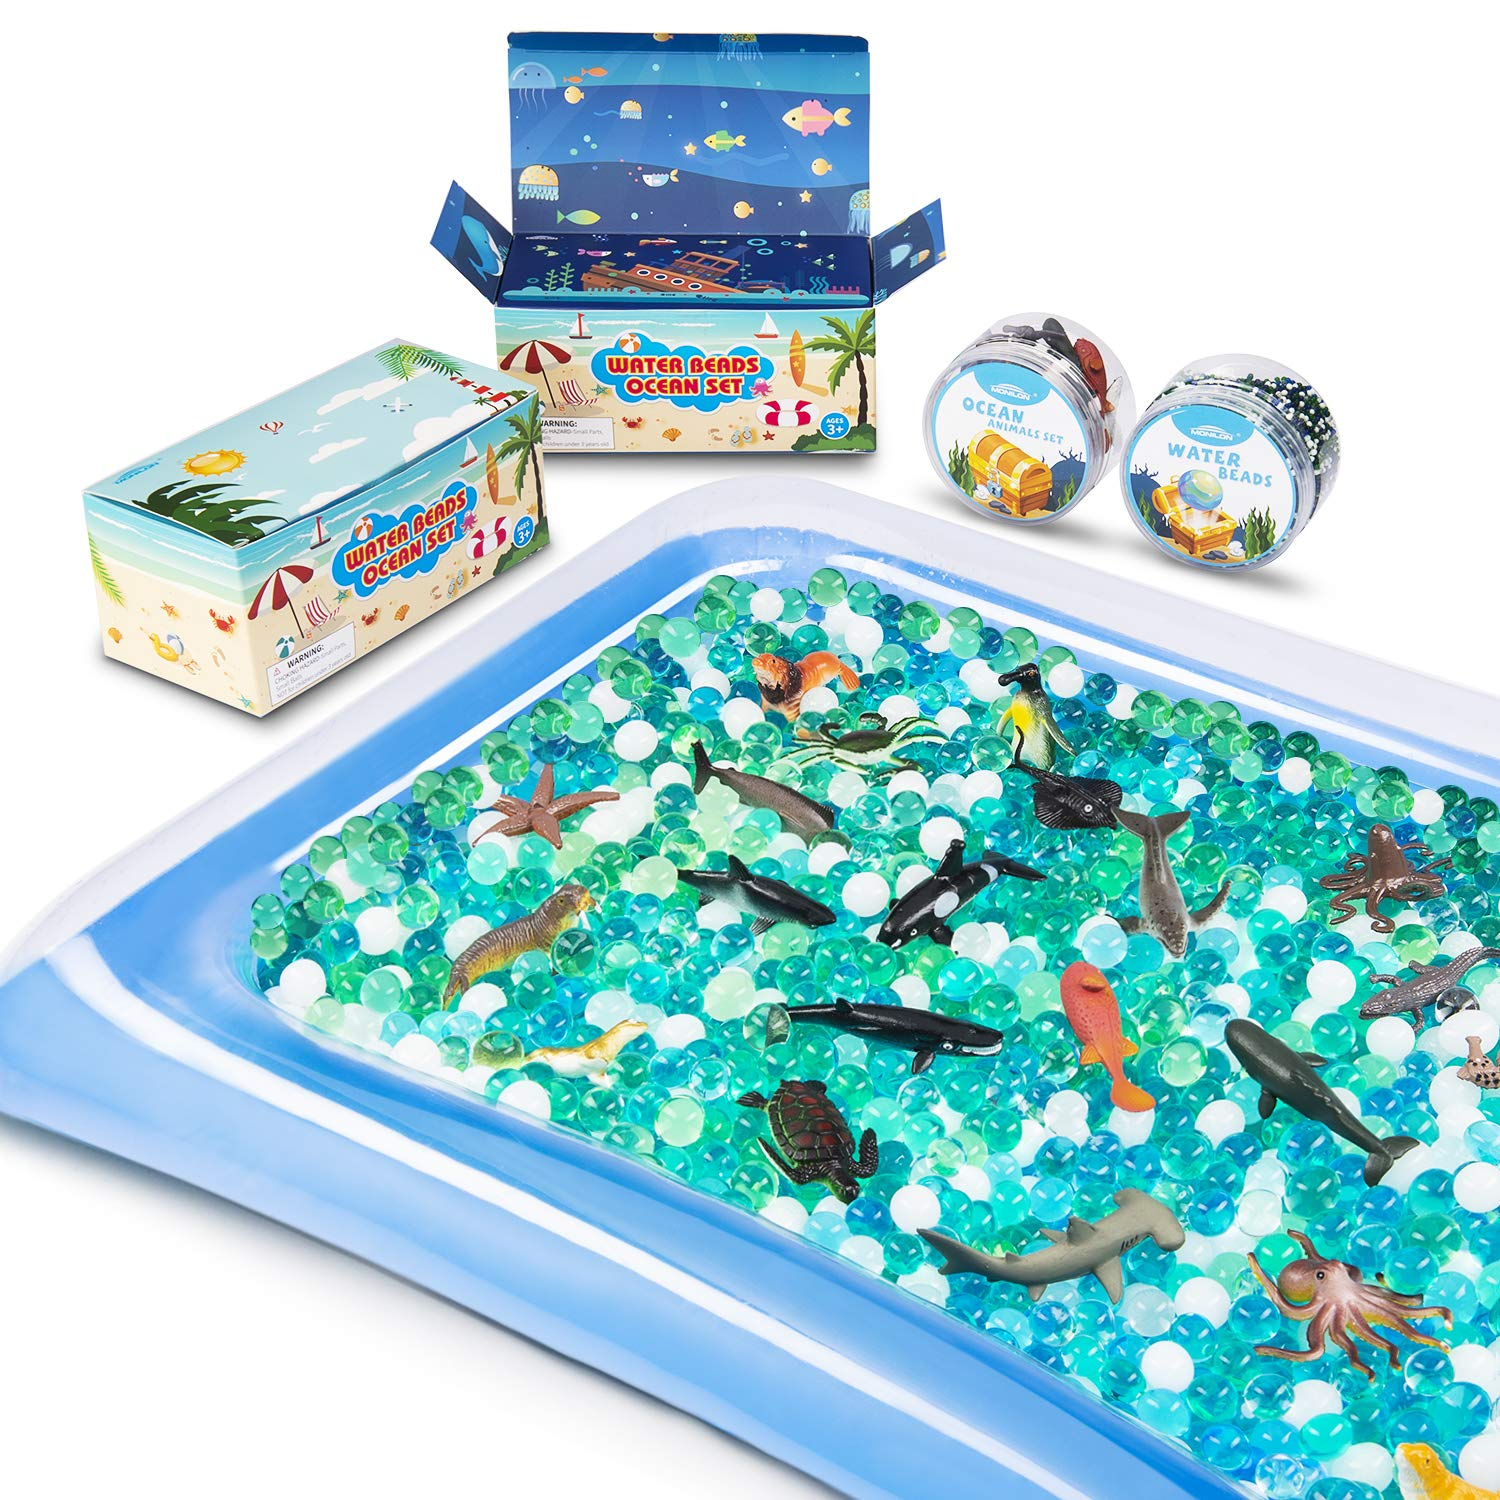 MONILON Water Beads, 24 Pcs Ocean Sea Animals Tactile Sensory Play Kids Toys for Boys Girls, Water Gel Soft Beads Growing Jelly Balls for Spa Refill, Pool and Decor-Inflatable Water Mat Include